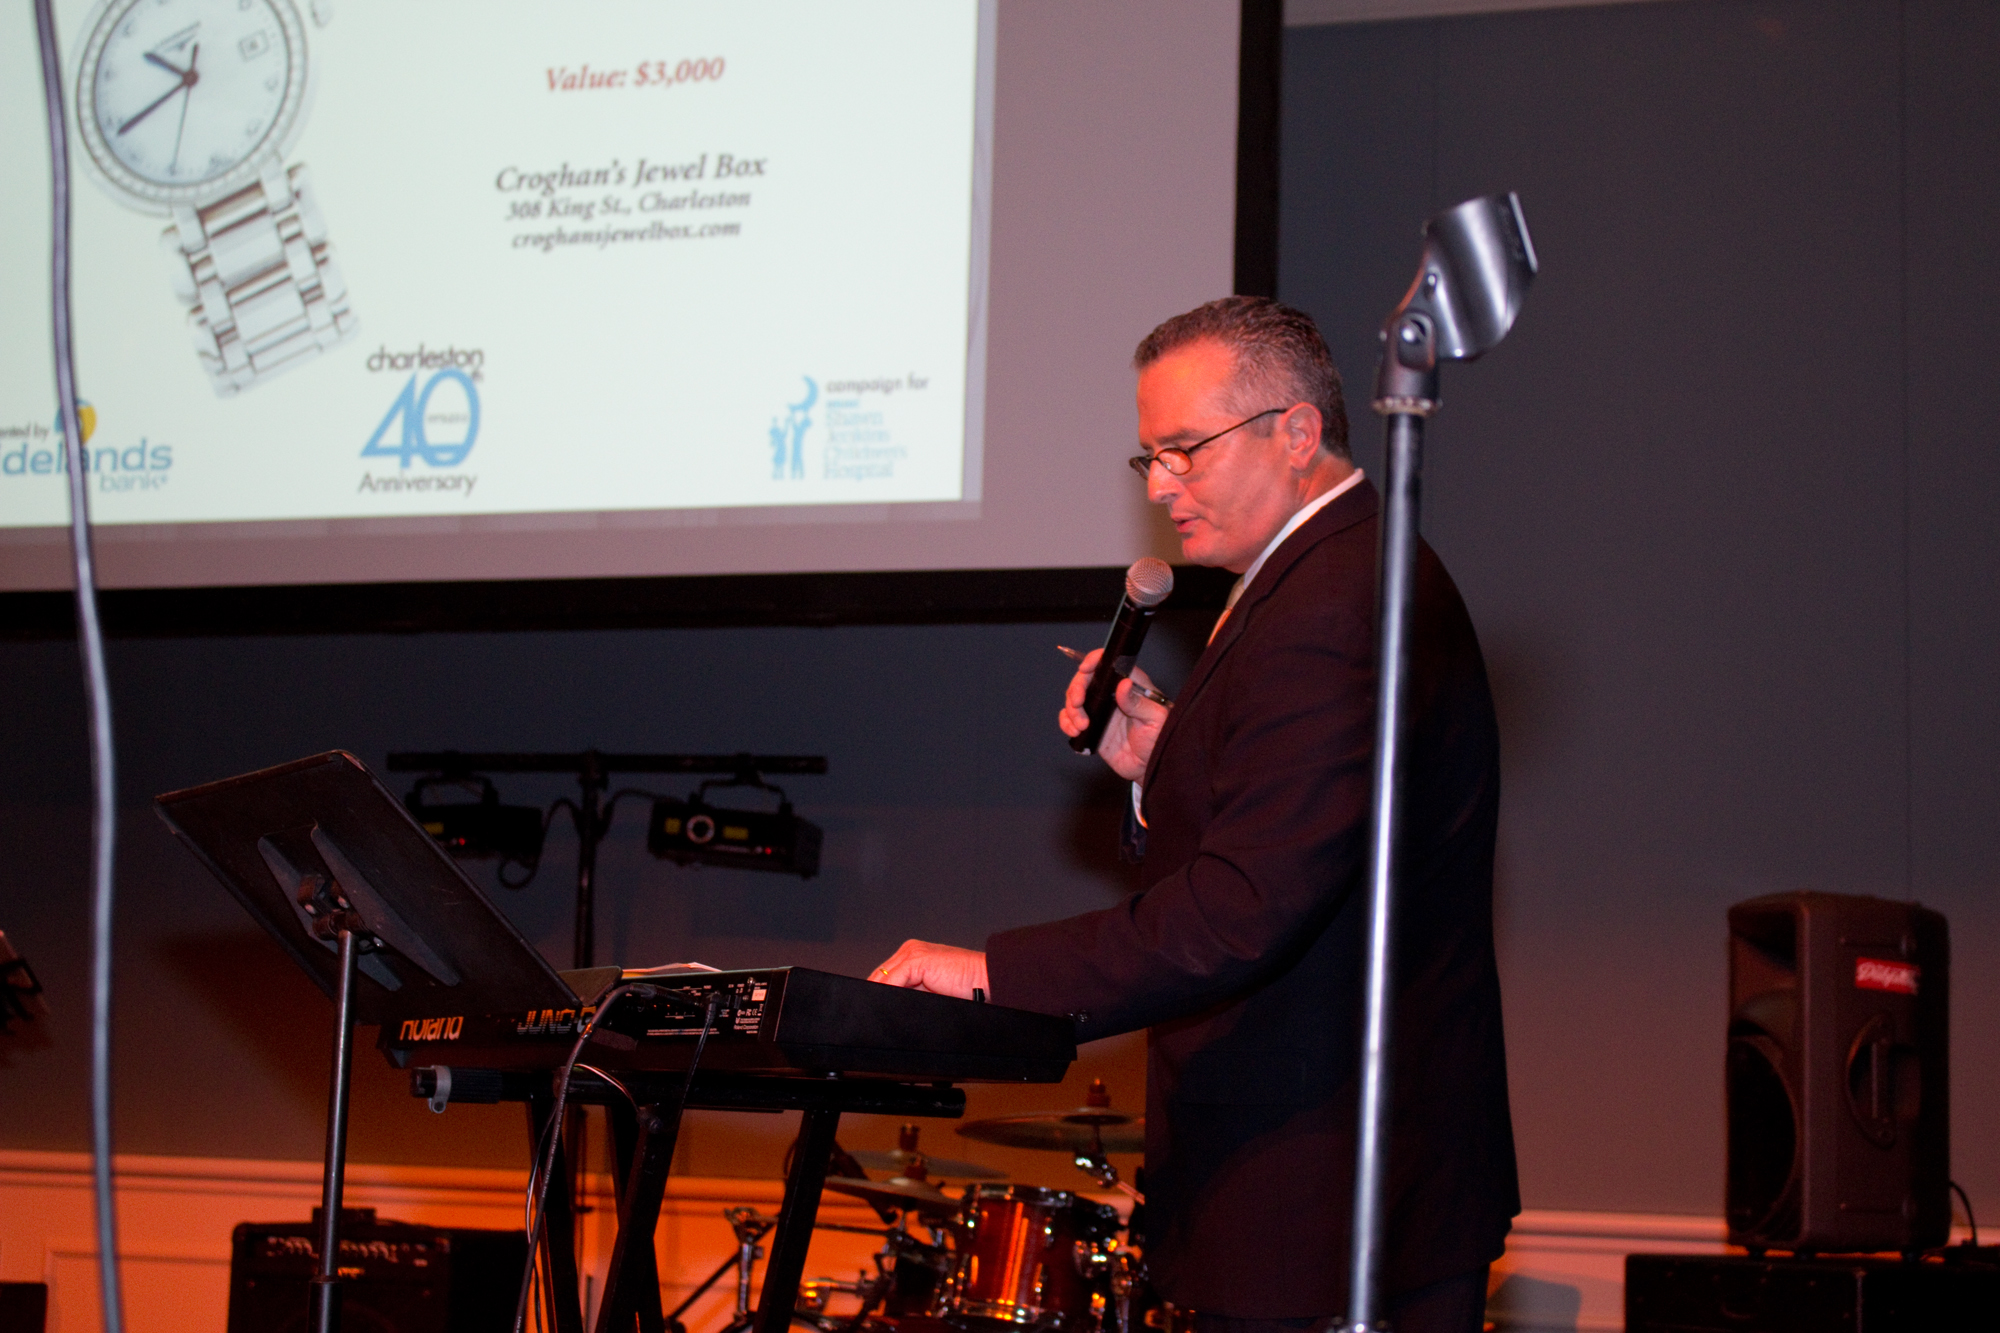 ABC News 4 anchor Dean Stephens emceed the festivities and assisted auctioneer Doug Warner in raising money for the new Children's Hospital.